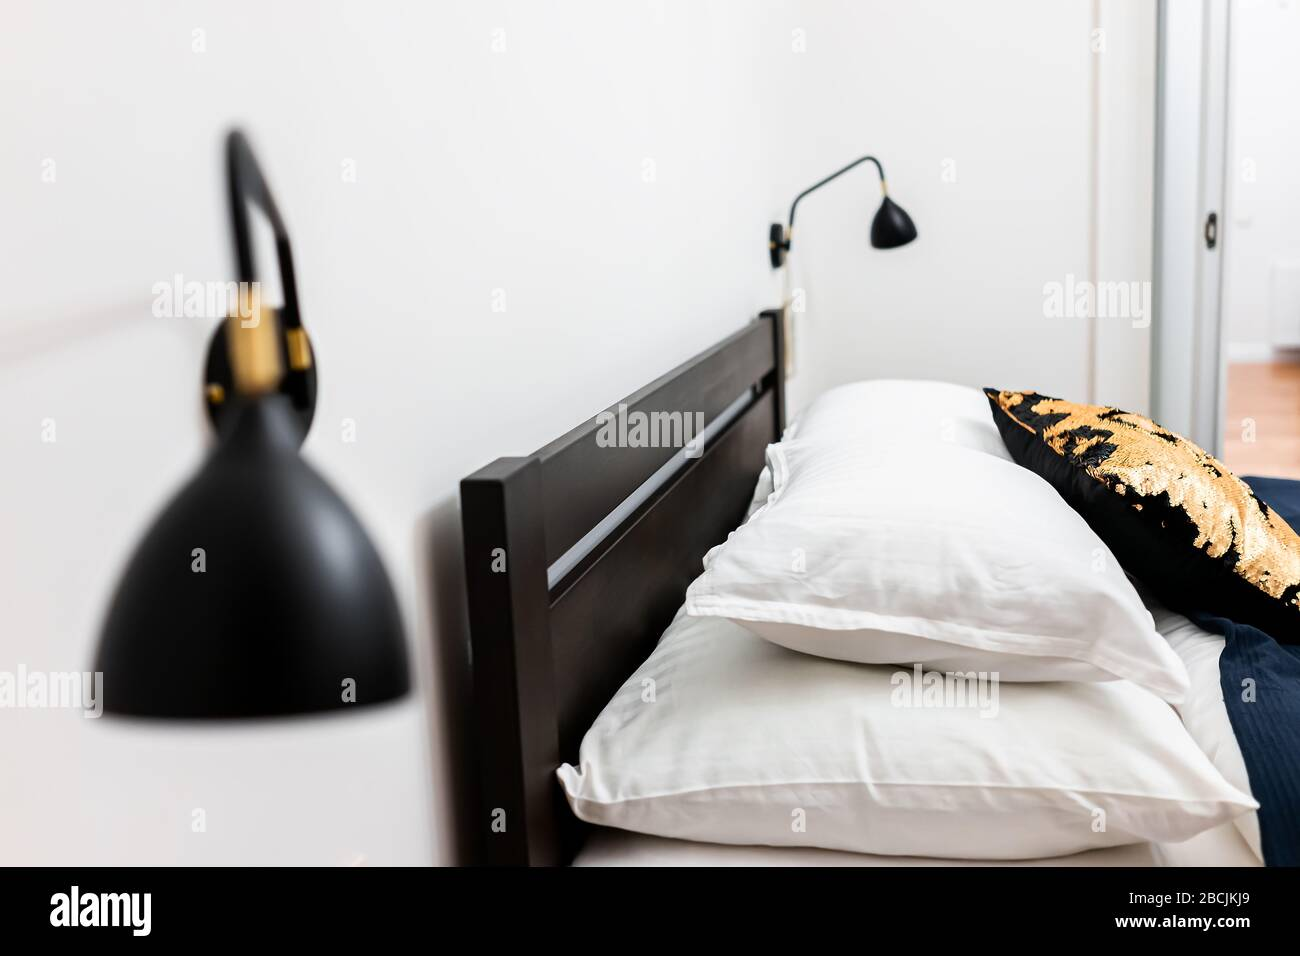 New Clean Queen Bed With Wall Mounted Lights Lamps Decorative Pillows In Bedroom Home House Or Hotel Apartment Side View Closeup Stock Photo Alamy